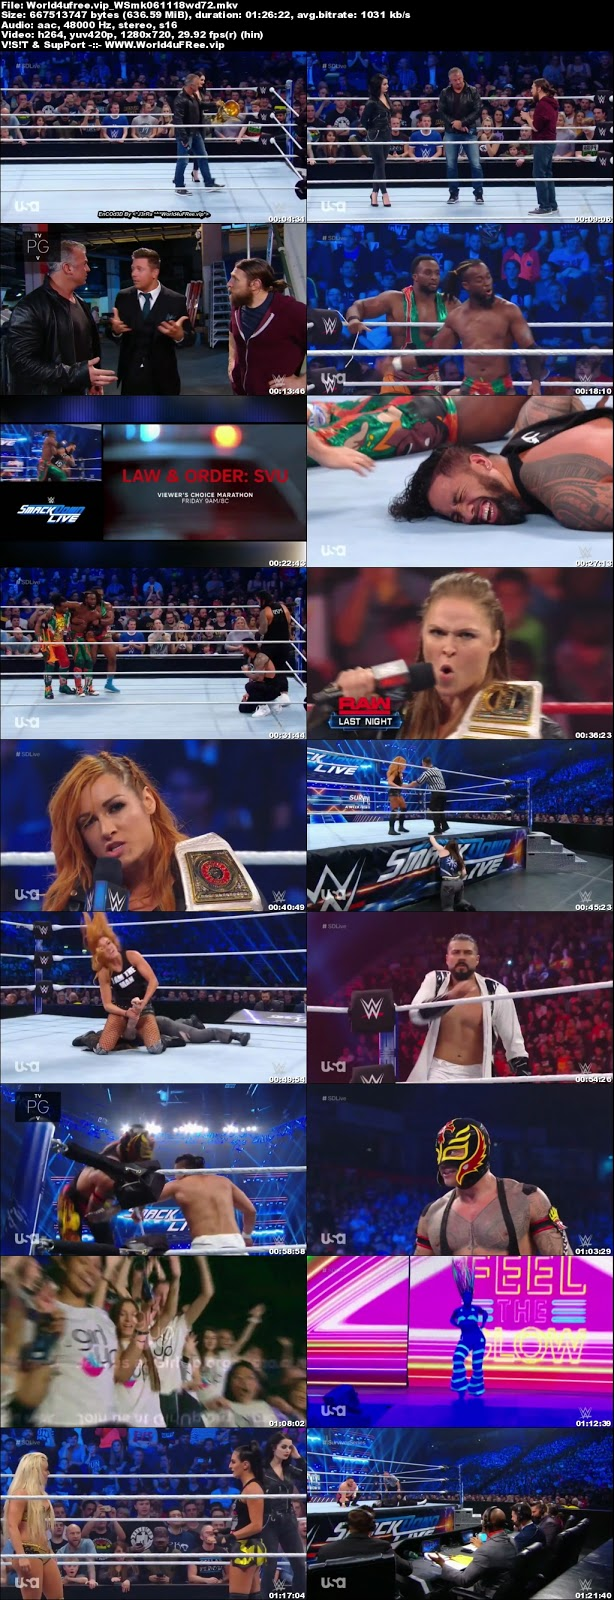 WWE Smackdown Live 06 NOVEMBER 2018 720p HDTV 600MB x264 tv show wwe WWE Smackdown Live 23 OCTOBER 2018 HDTV 480p 650MB x264 compressed small size free download or watch online at world4ufree.fun